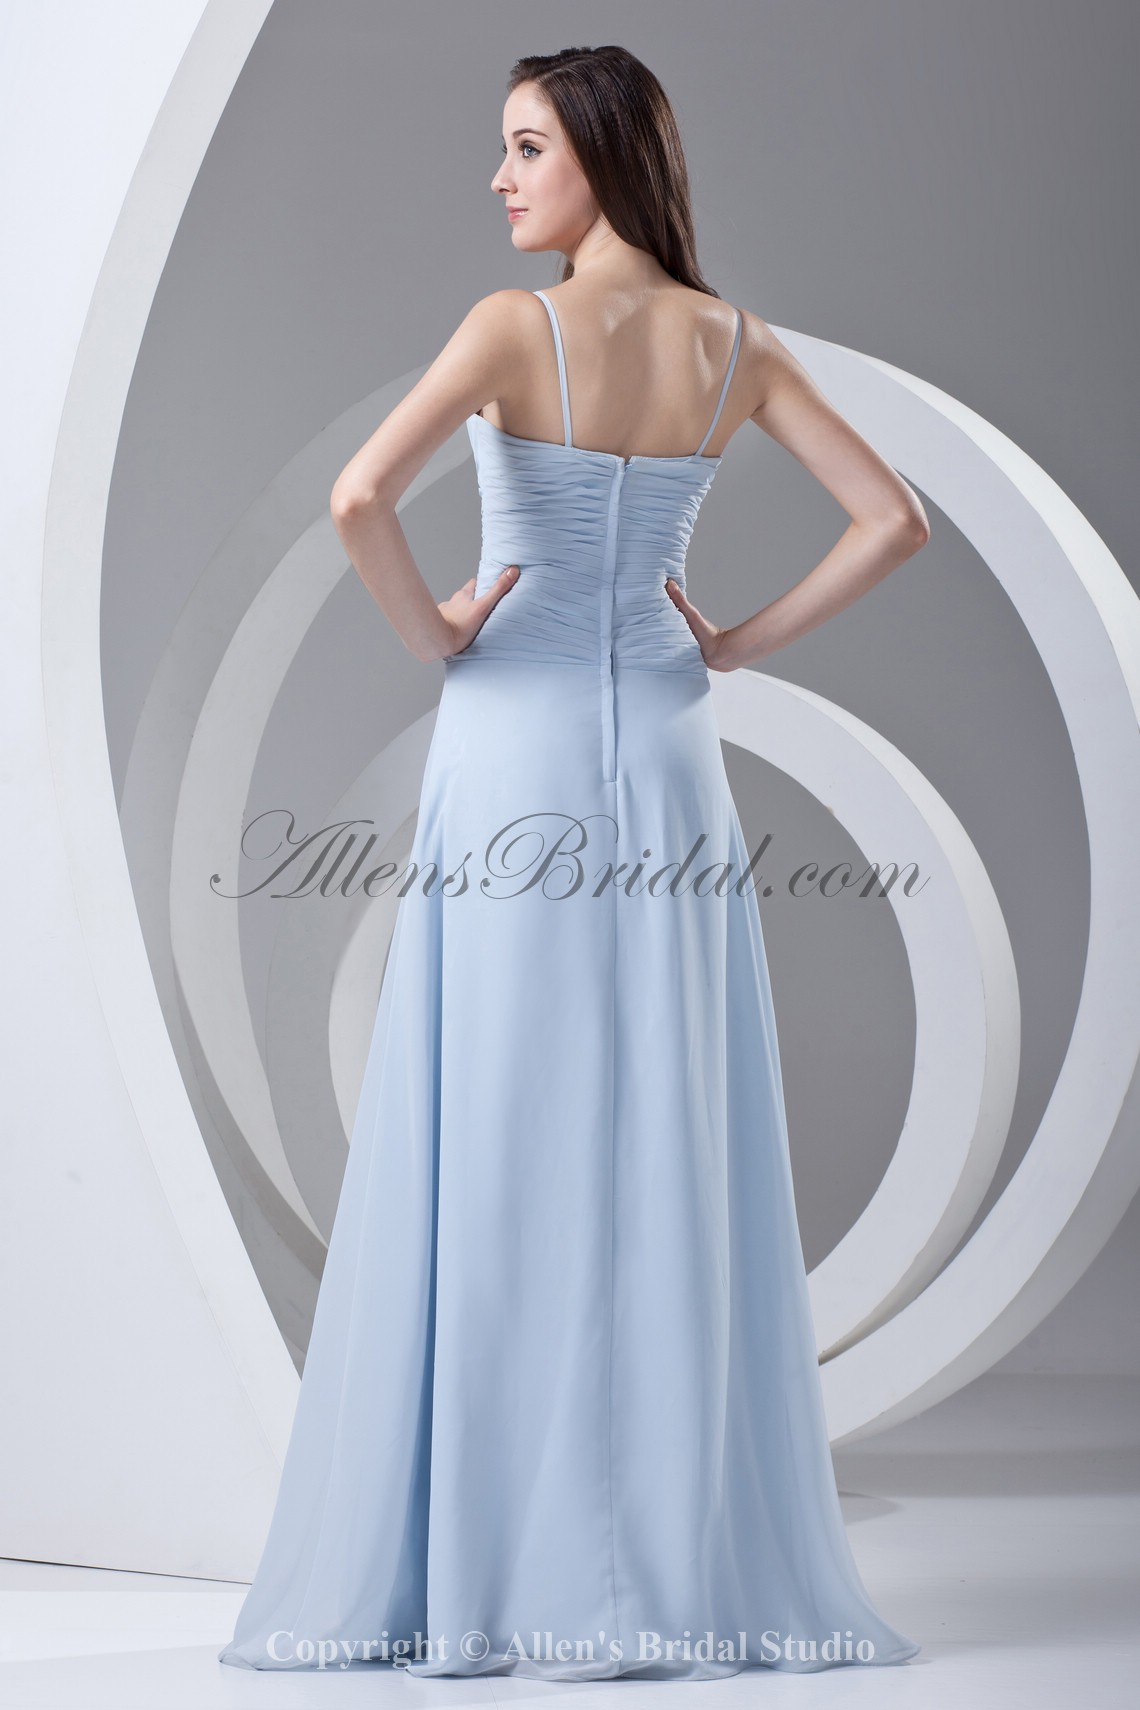 /353-2825/chiffon-spaghetti-straps-sweep-train-a-line-prom-dress.jpg